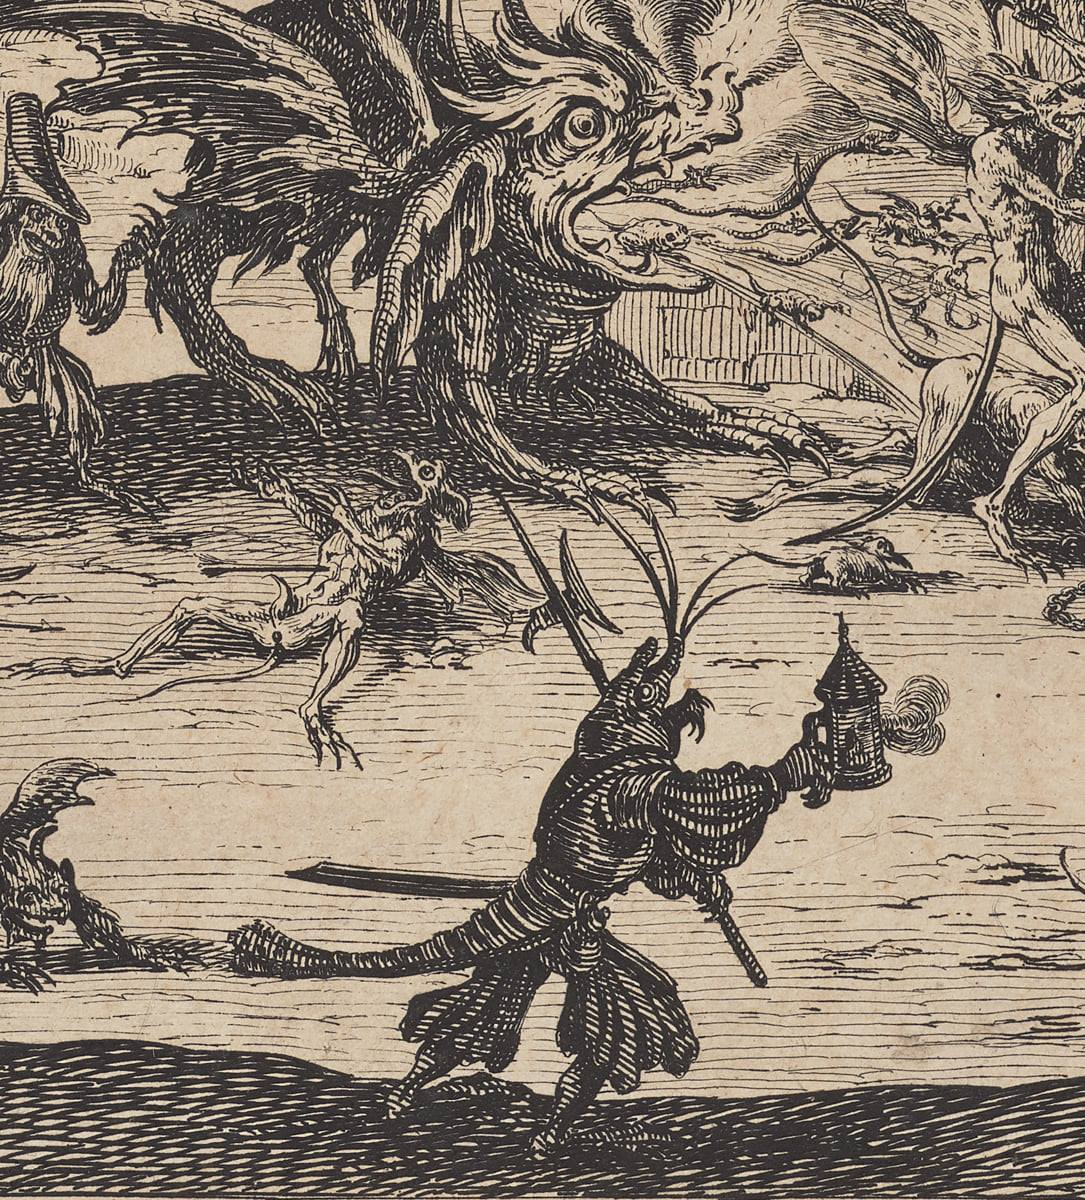 Detail of a demon with a head similar to a lobster, this time dressed in knee breeches and coat, holding a lantern and halberd, a combined spear and battle axe. Above the demon is a beast on all fours with a large head. It breathes fires from a gaping mouth and has bulging eyes. One demon is seen fleeing the fire and another lays on its back in anticipation of an attack by a third demon.